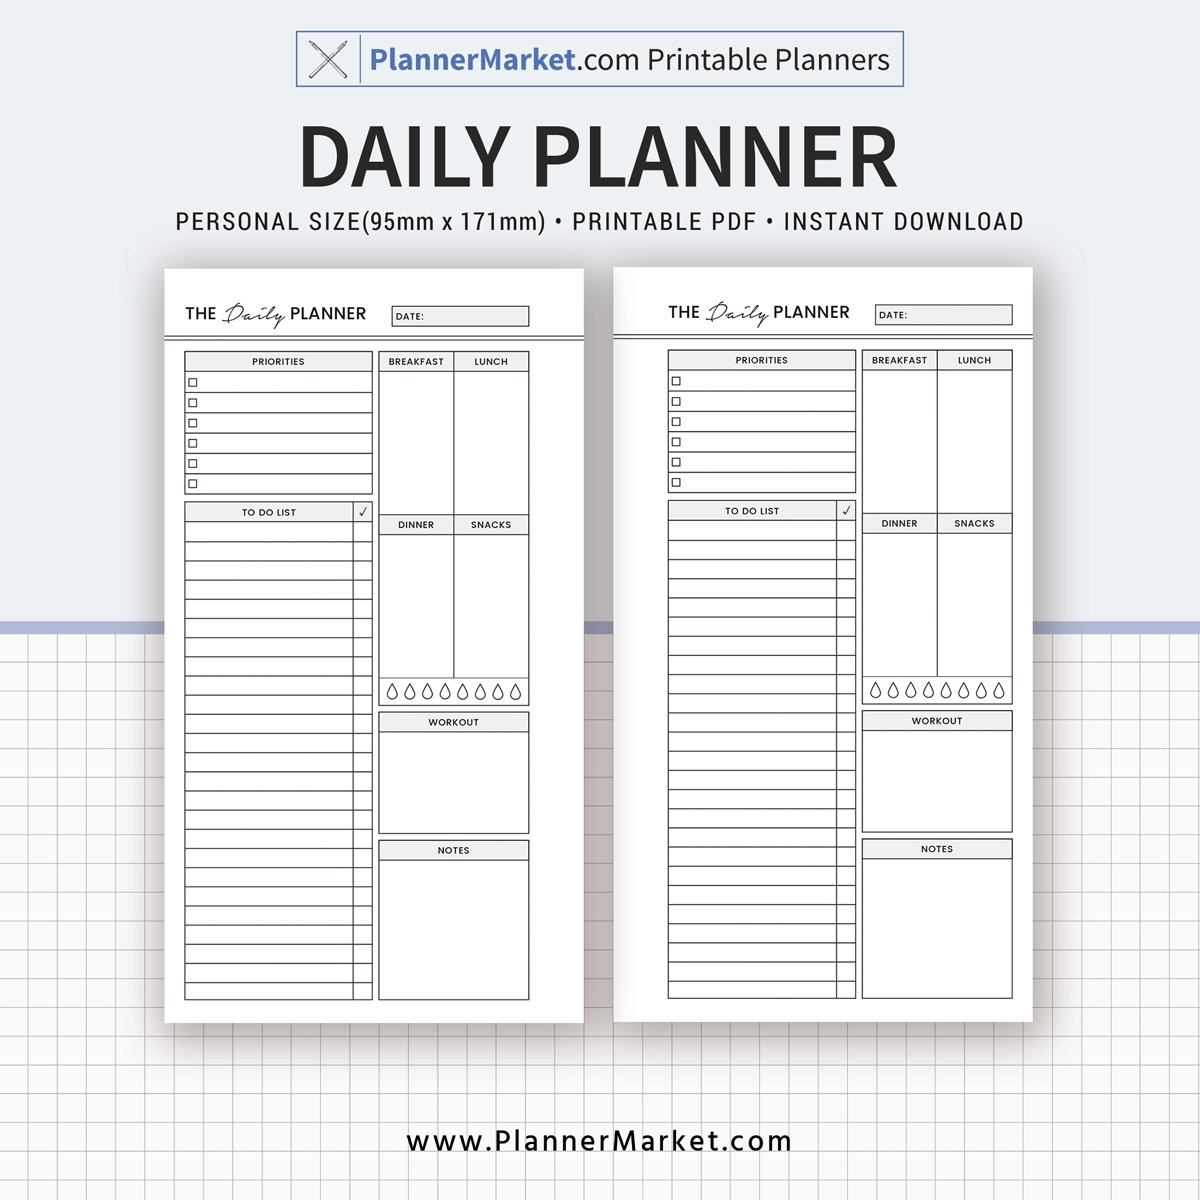 Daily Planner, 2020 Planner, Personal Size Inserts, Planner